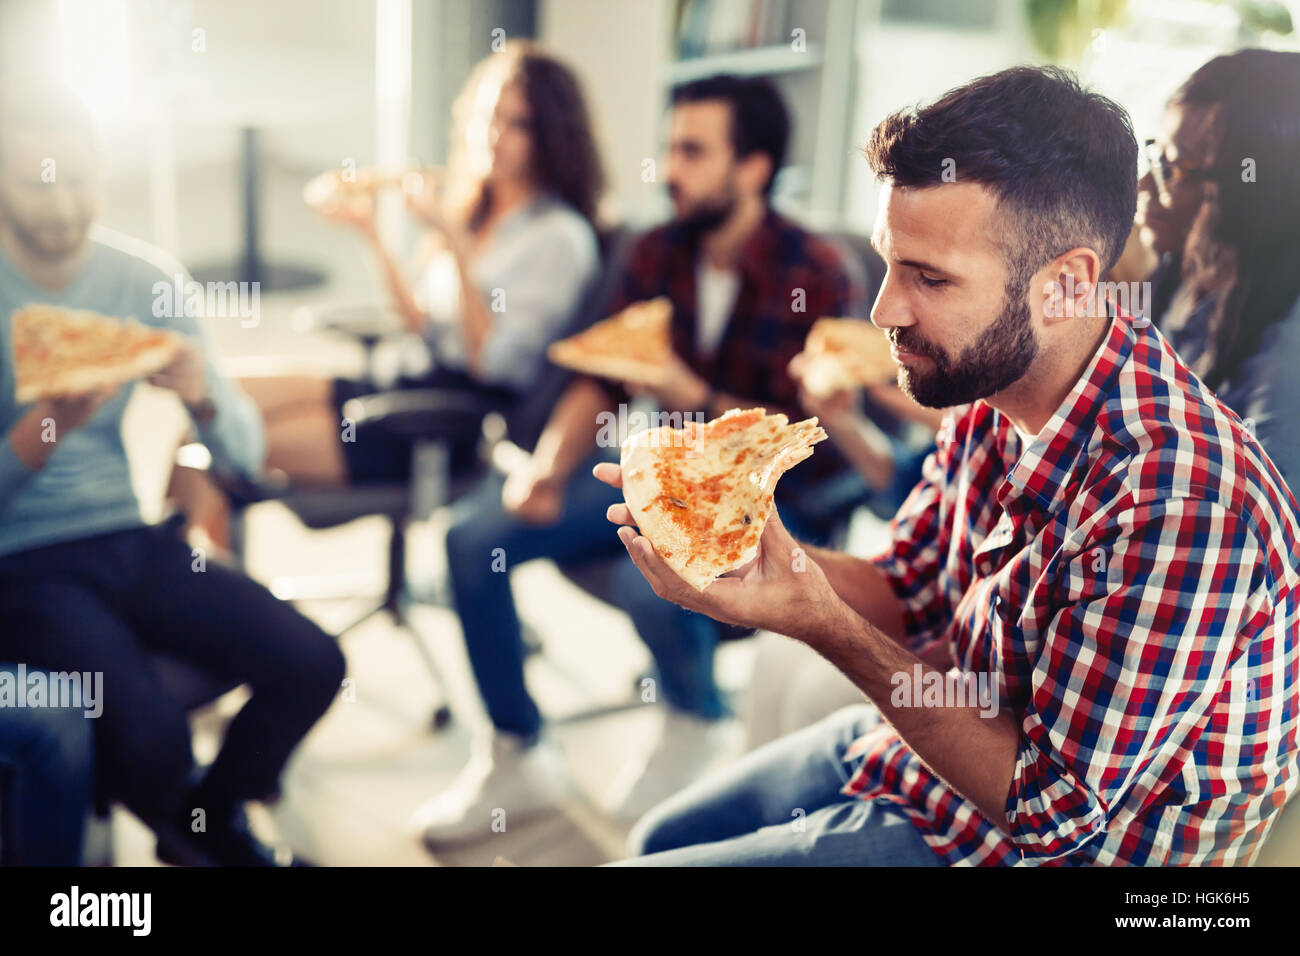 Coworkers eating pizza during work  break at office Stock Photo